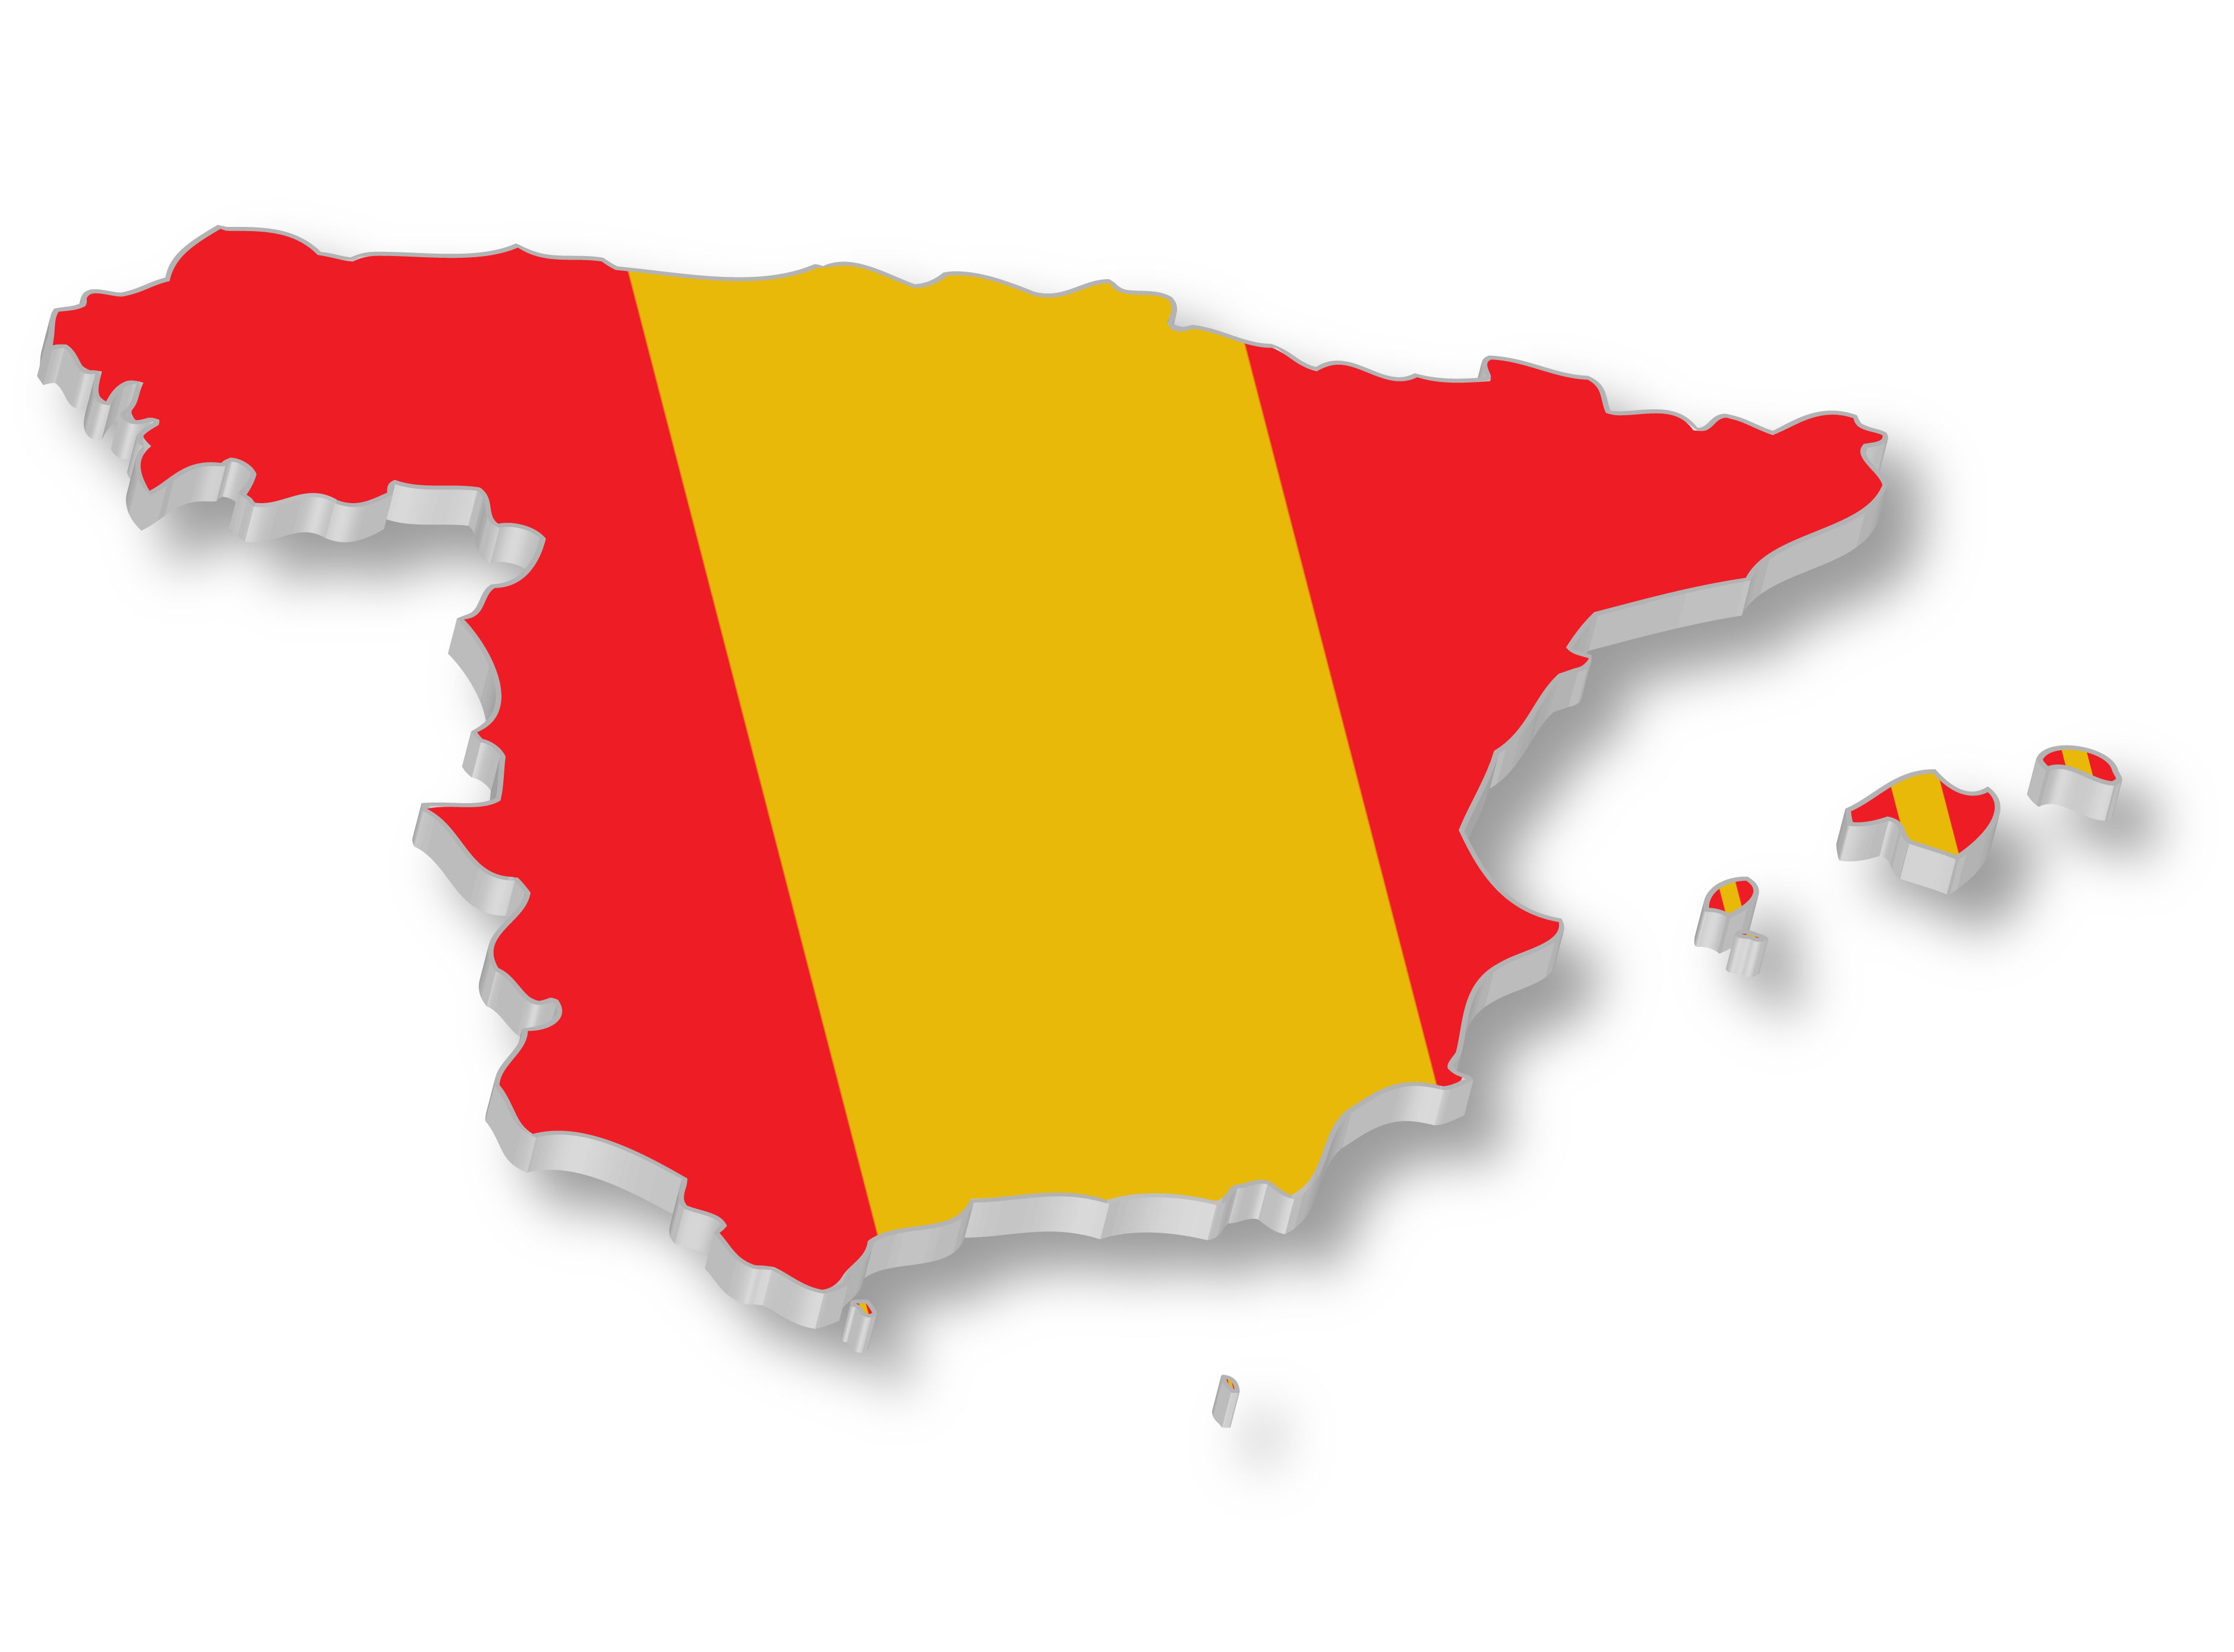 Online gambling summary – Spain 2009